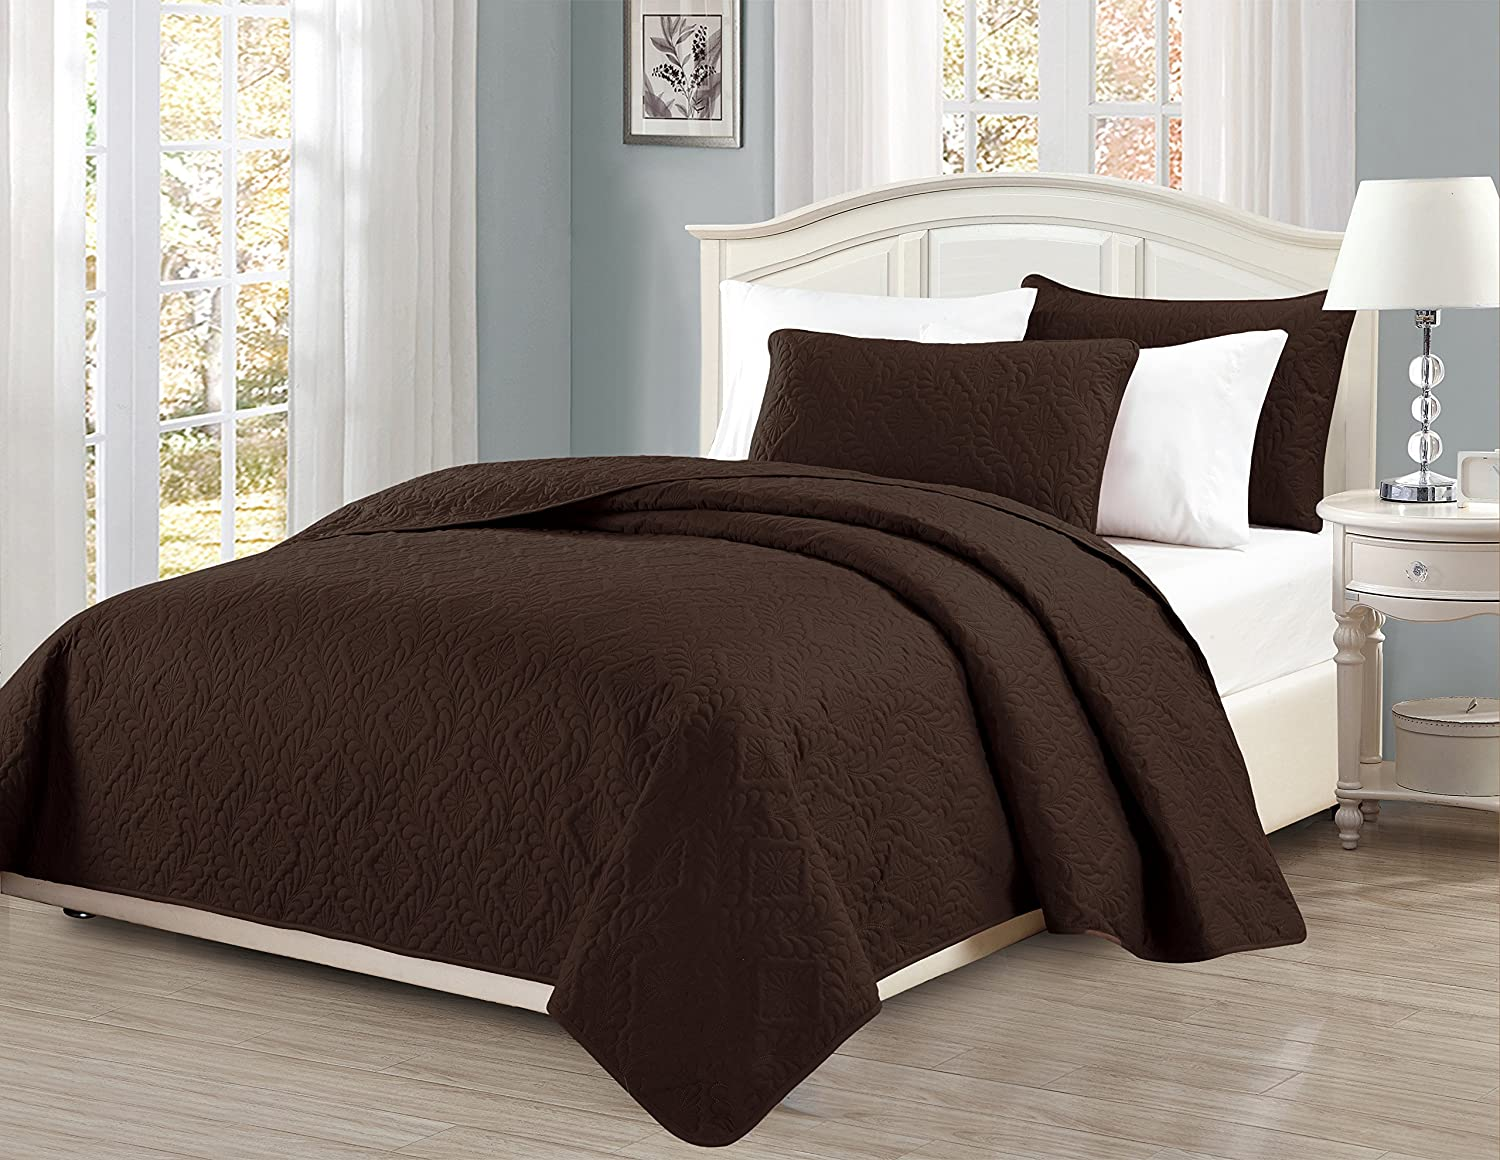 3 pc Diamond Bedspread Bed-cover Embossed solid Brown/Choclate New Size:Full/Queen Color:Brown/Choclate